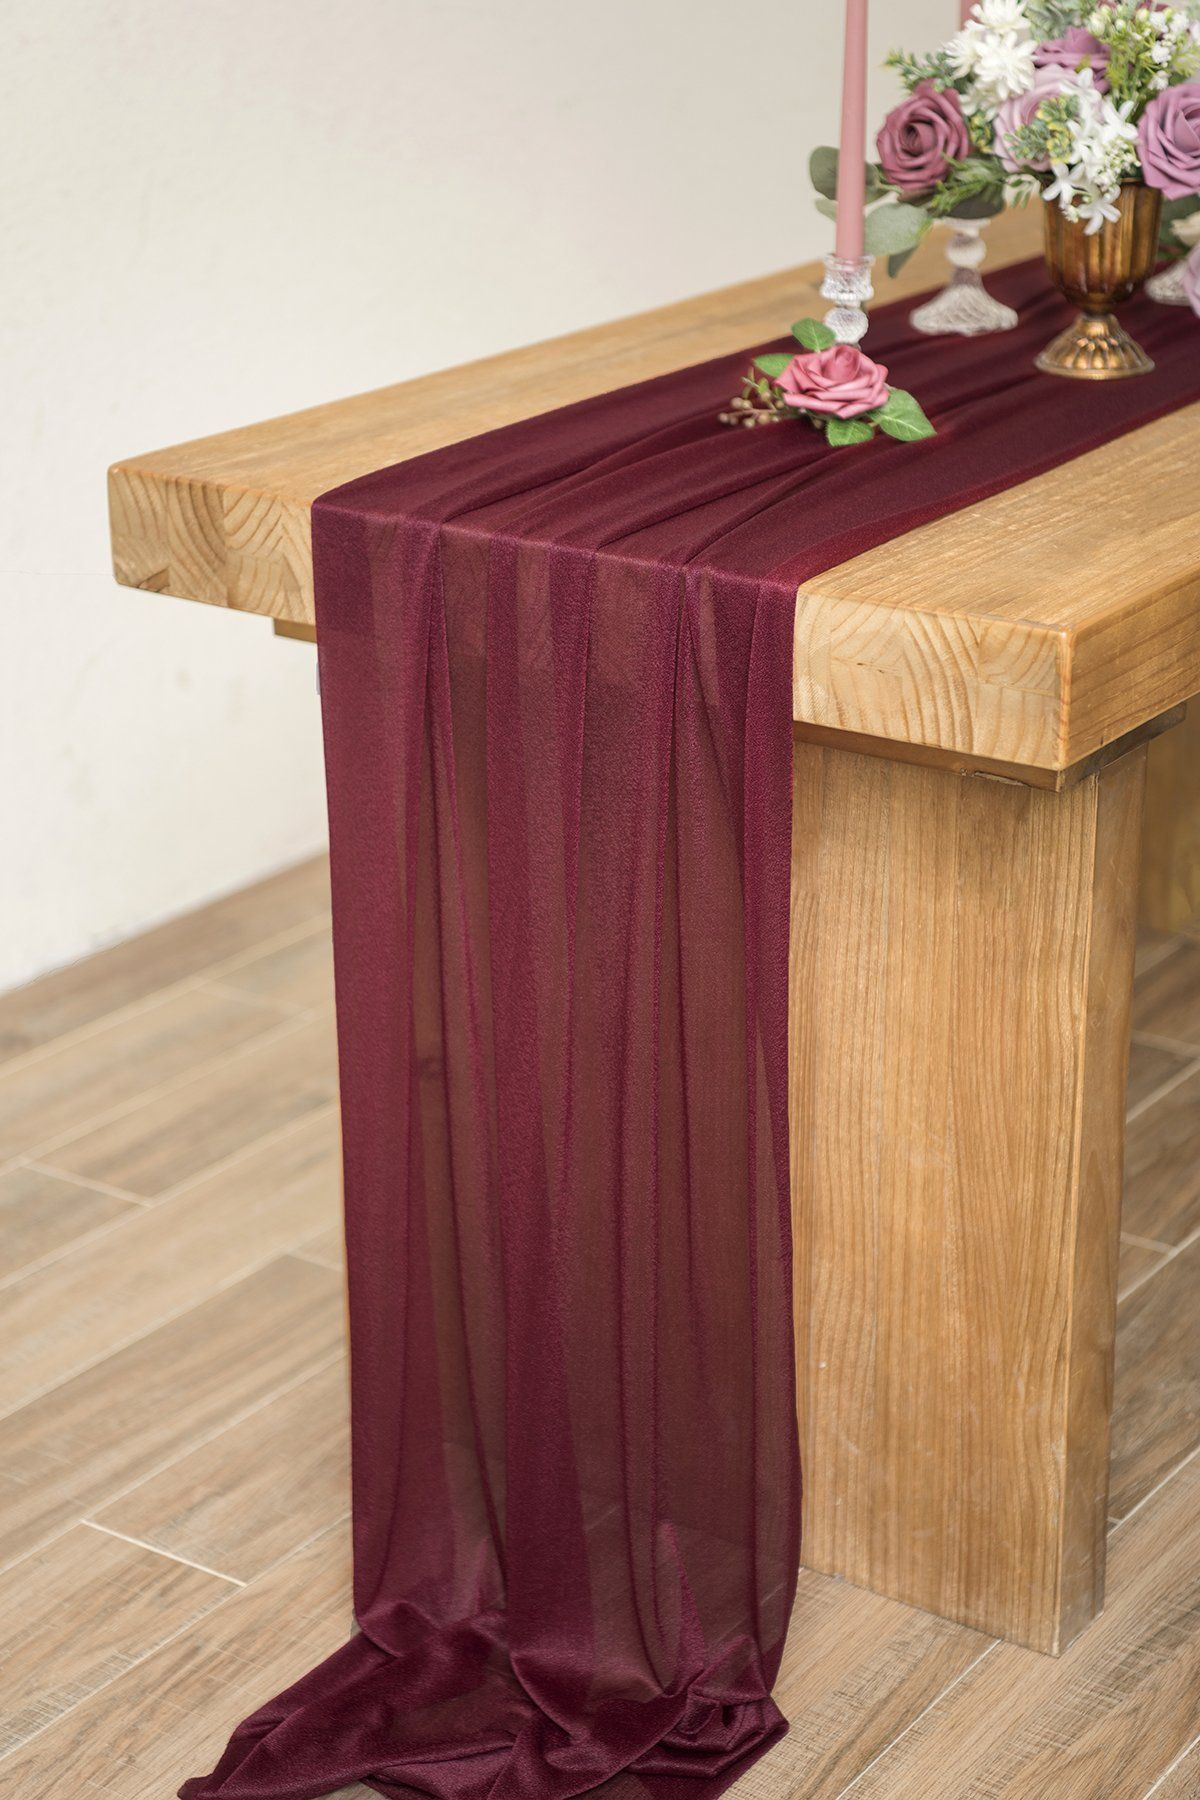 27 X 120 Chiffon Table Runner Wedding Sheer Table Runner 6 Colors Ling S Moment In 2020 Burgundy Table Runner Table Runners Wedding Table Runners